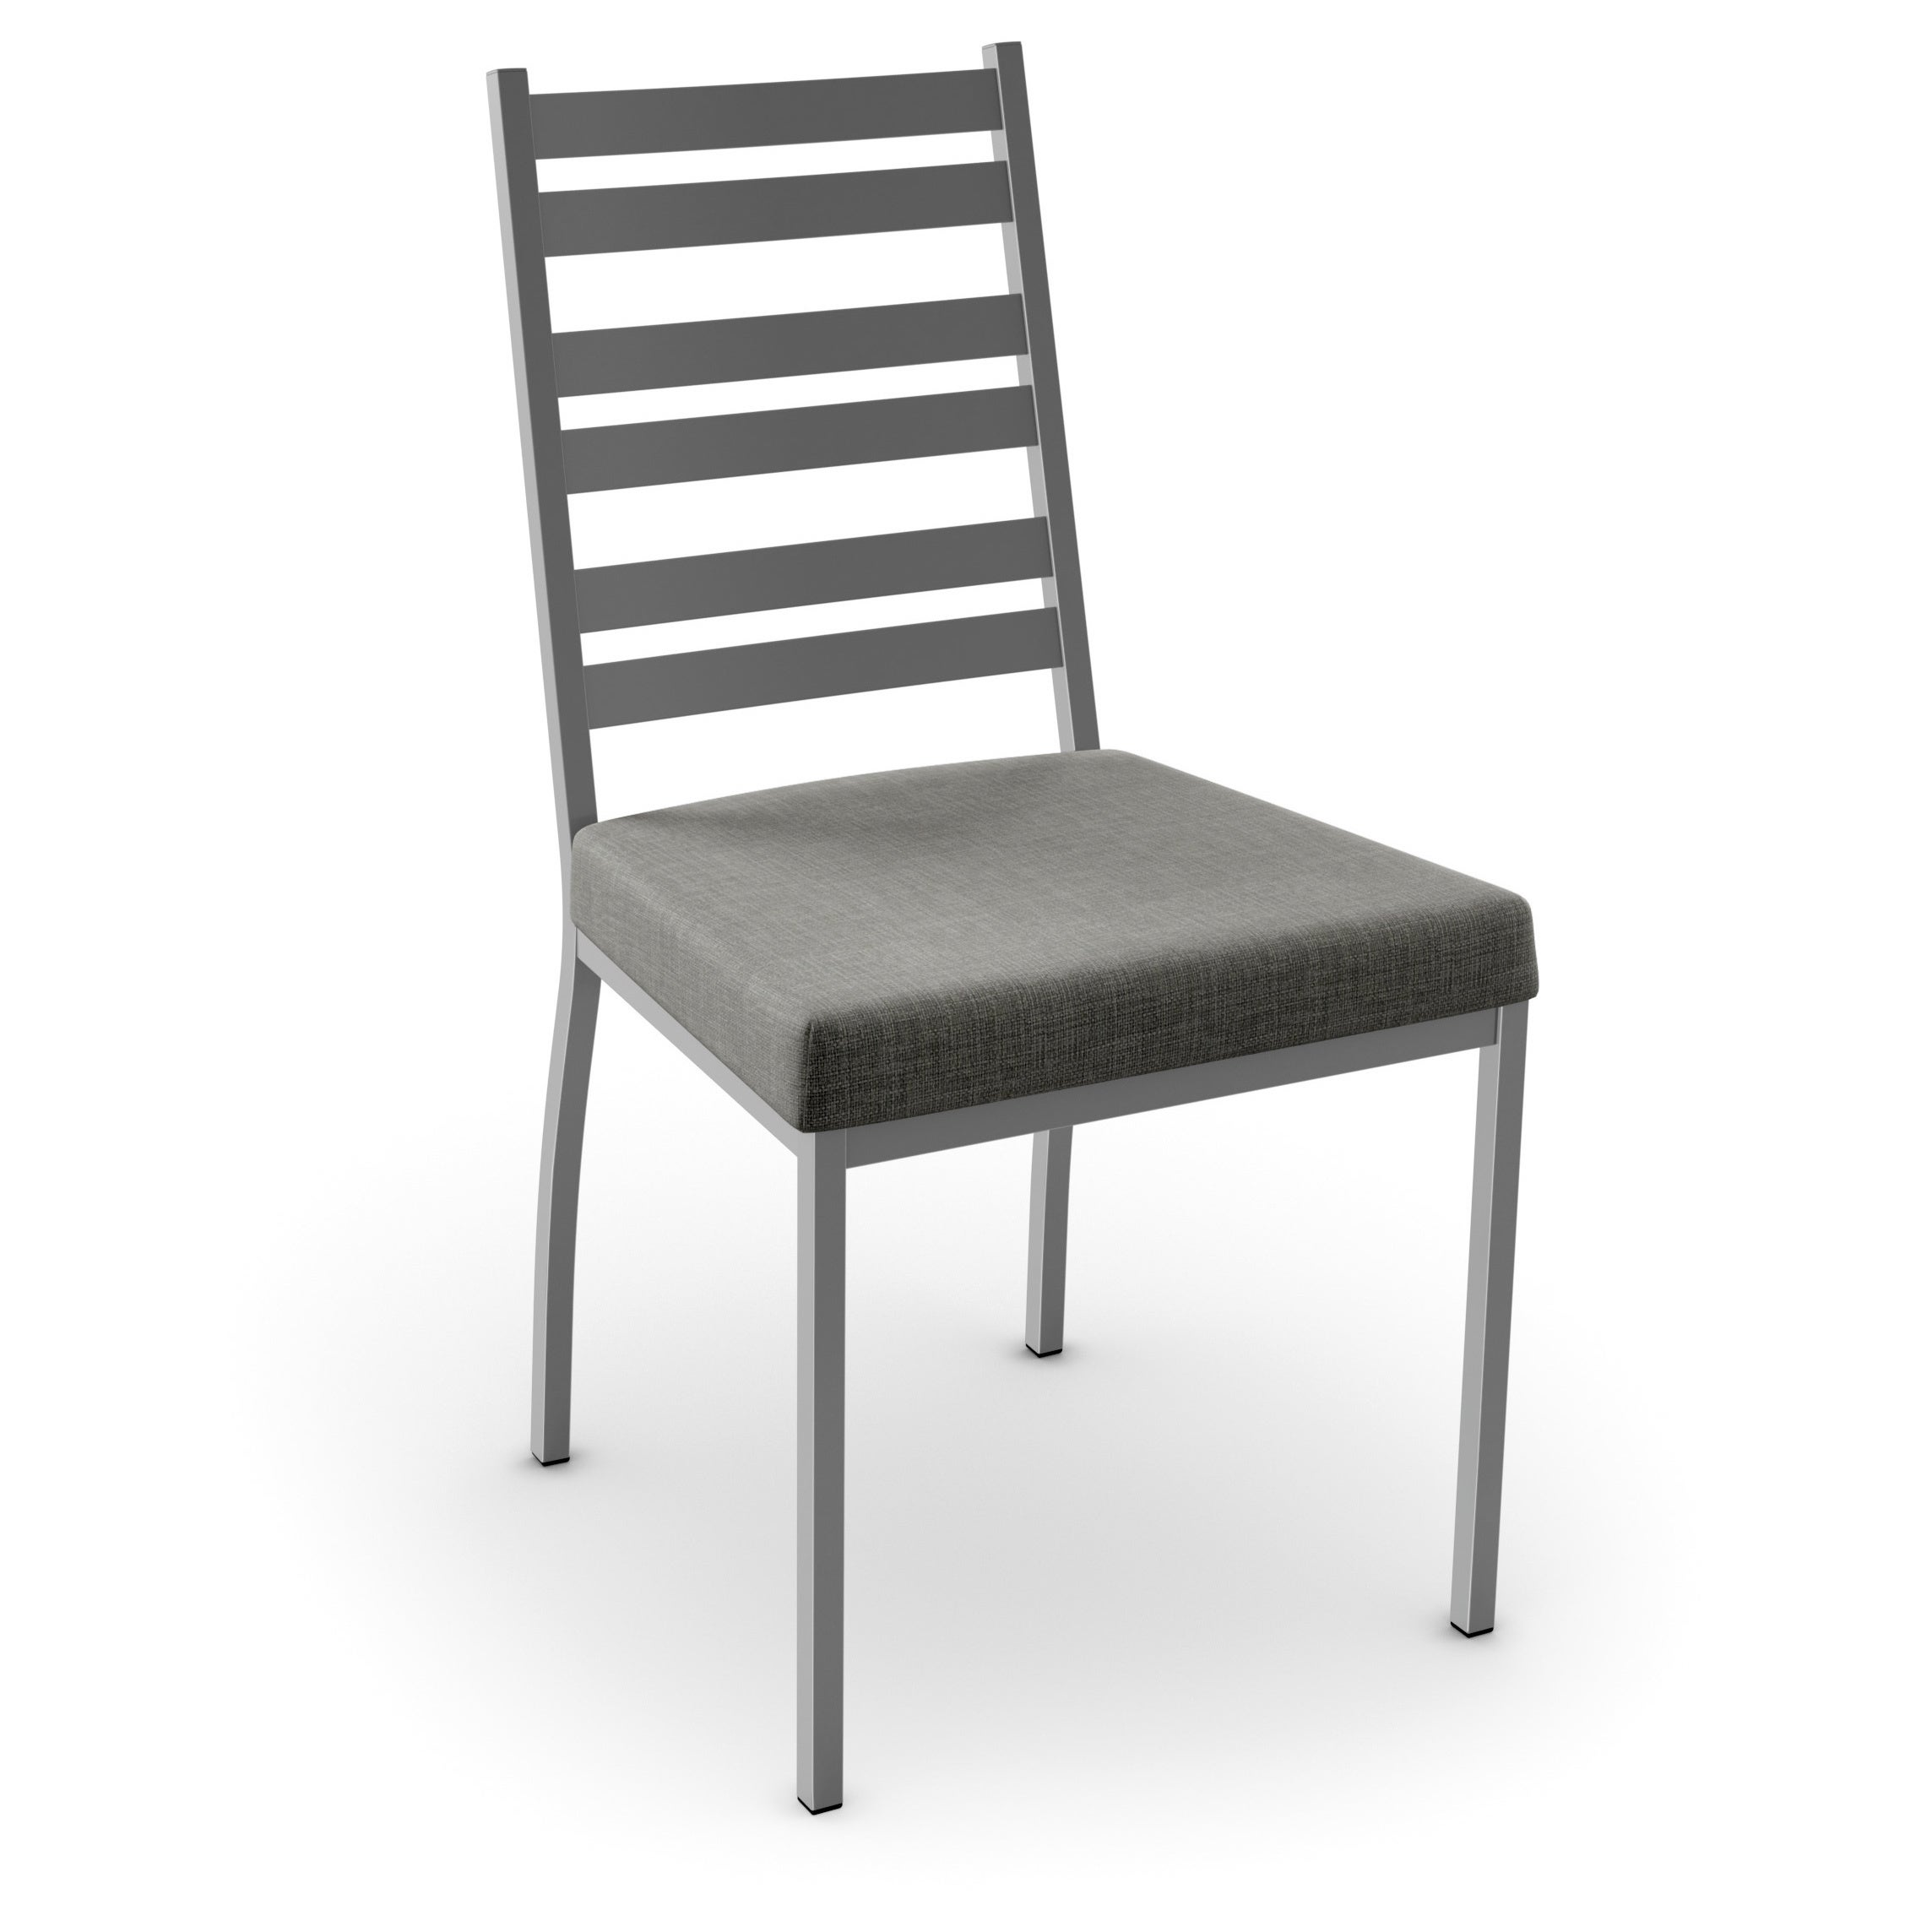 AIMSCO/DELTA HI-TECH Stage Metal Chair (Set of 2) (Metal:...